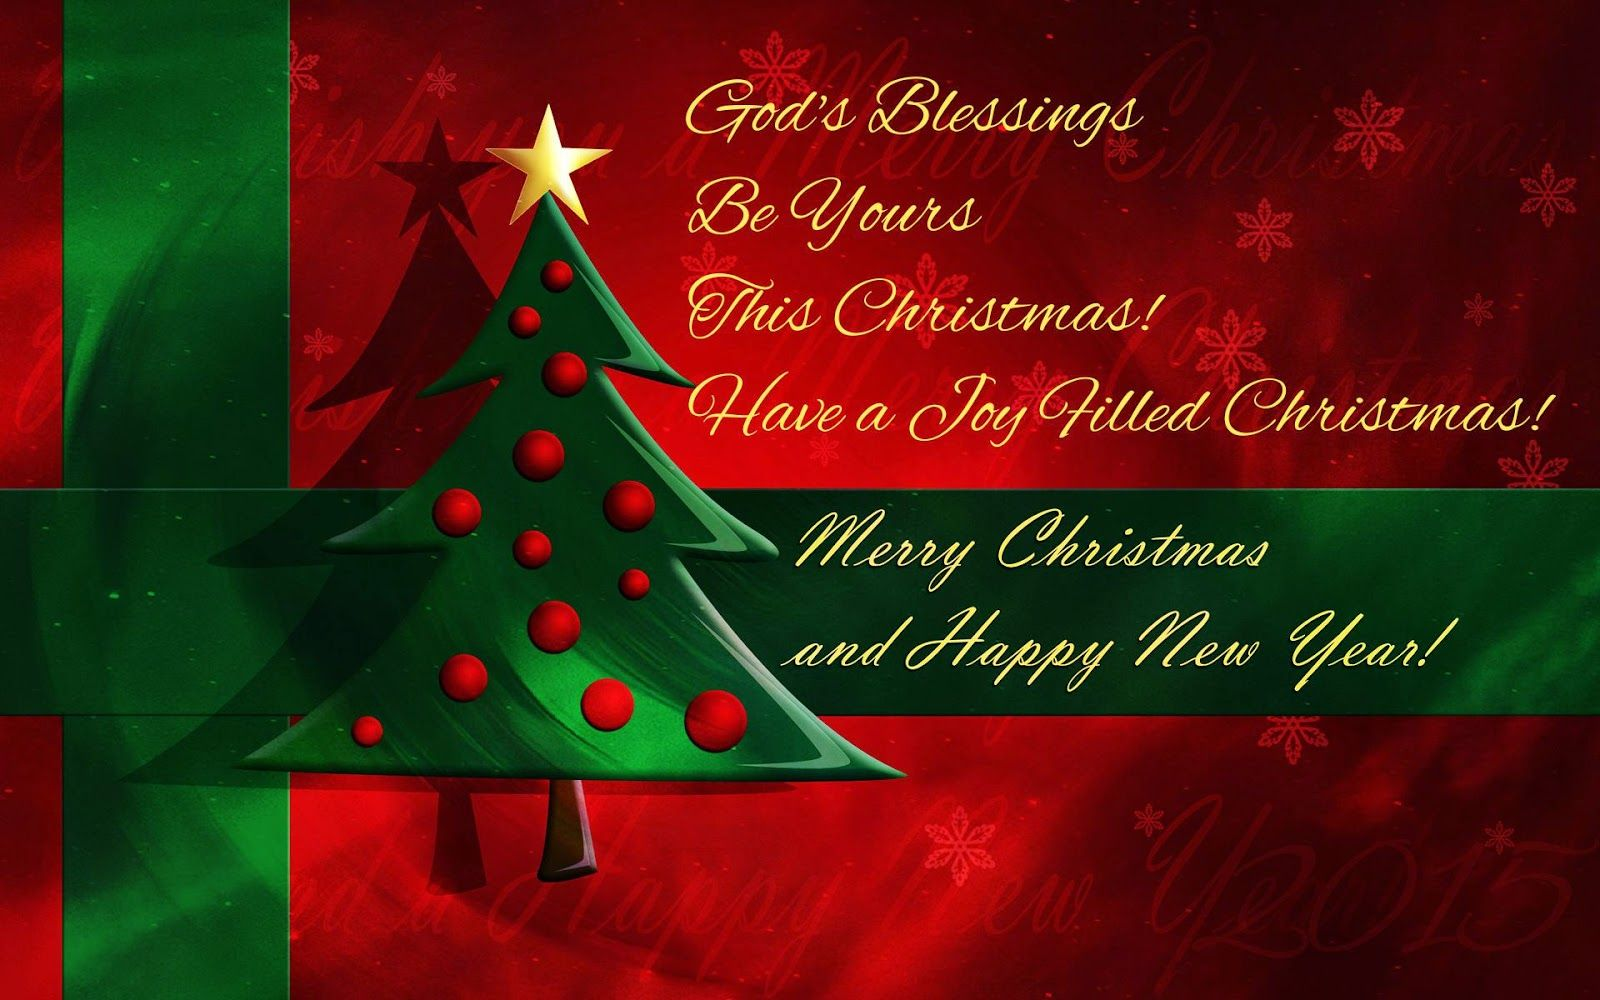 God blessings business christmas greetings quotes messages wishes god blessings business christmas greetings quotes messages wishes images wallpapers download christmas wishes 2017 kristyandbryce Image collections